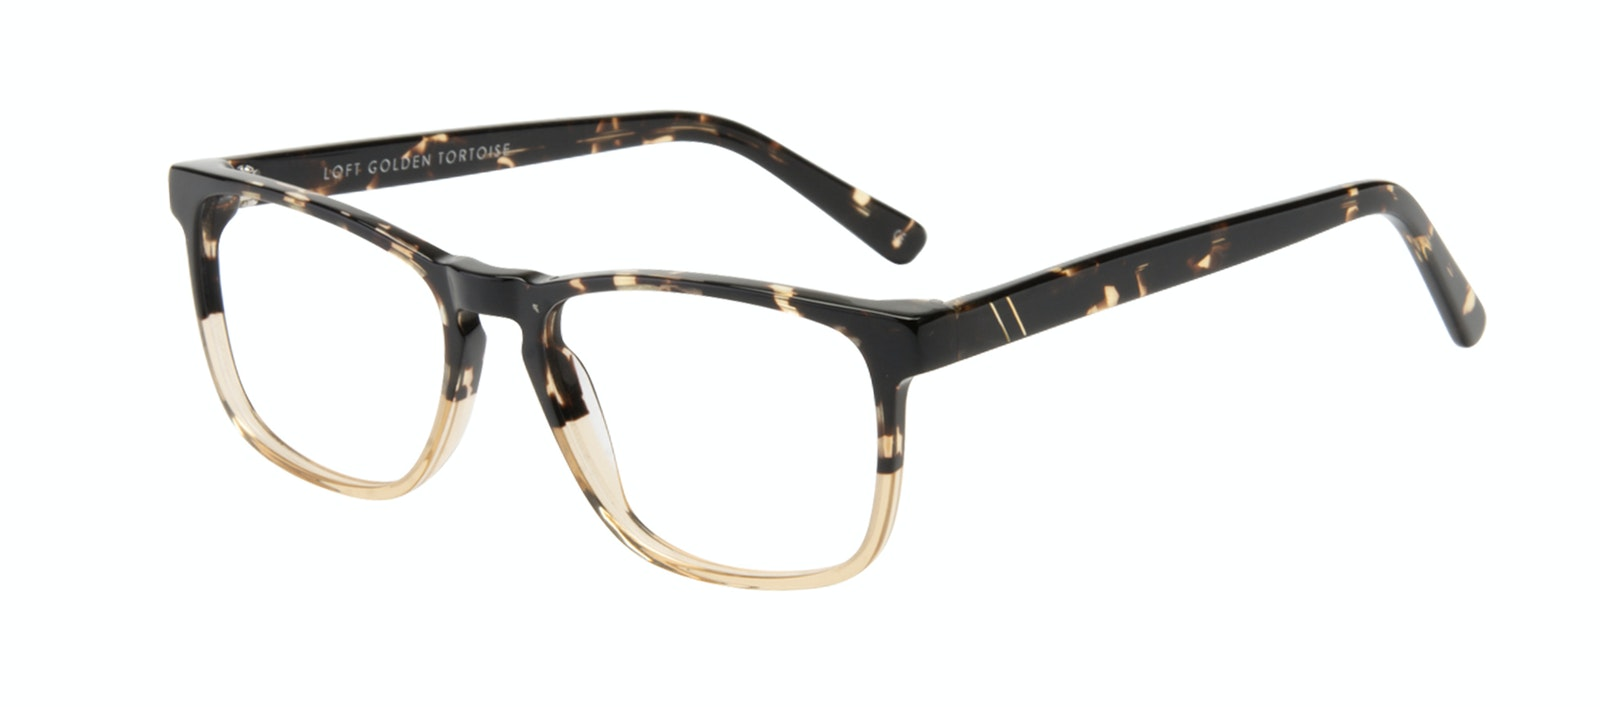 Affordable Fashion Glasses Rectangle Eyeglasses Men Loft Golden Tortoise Tilt